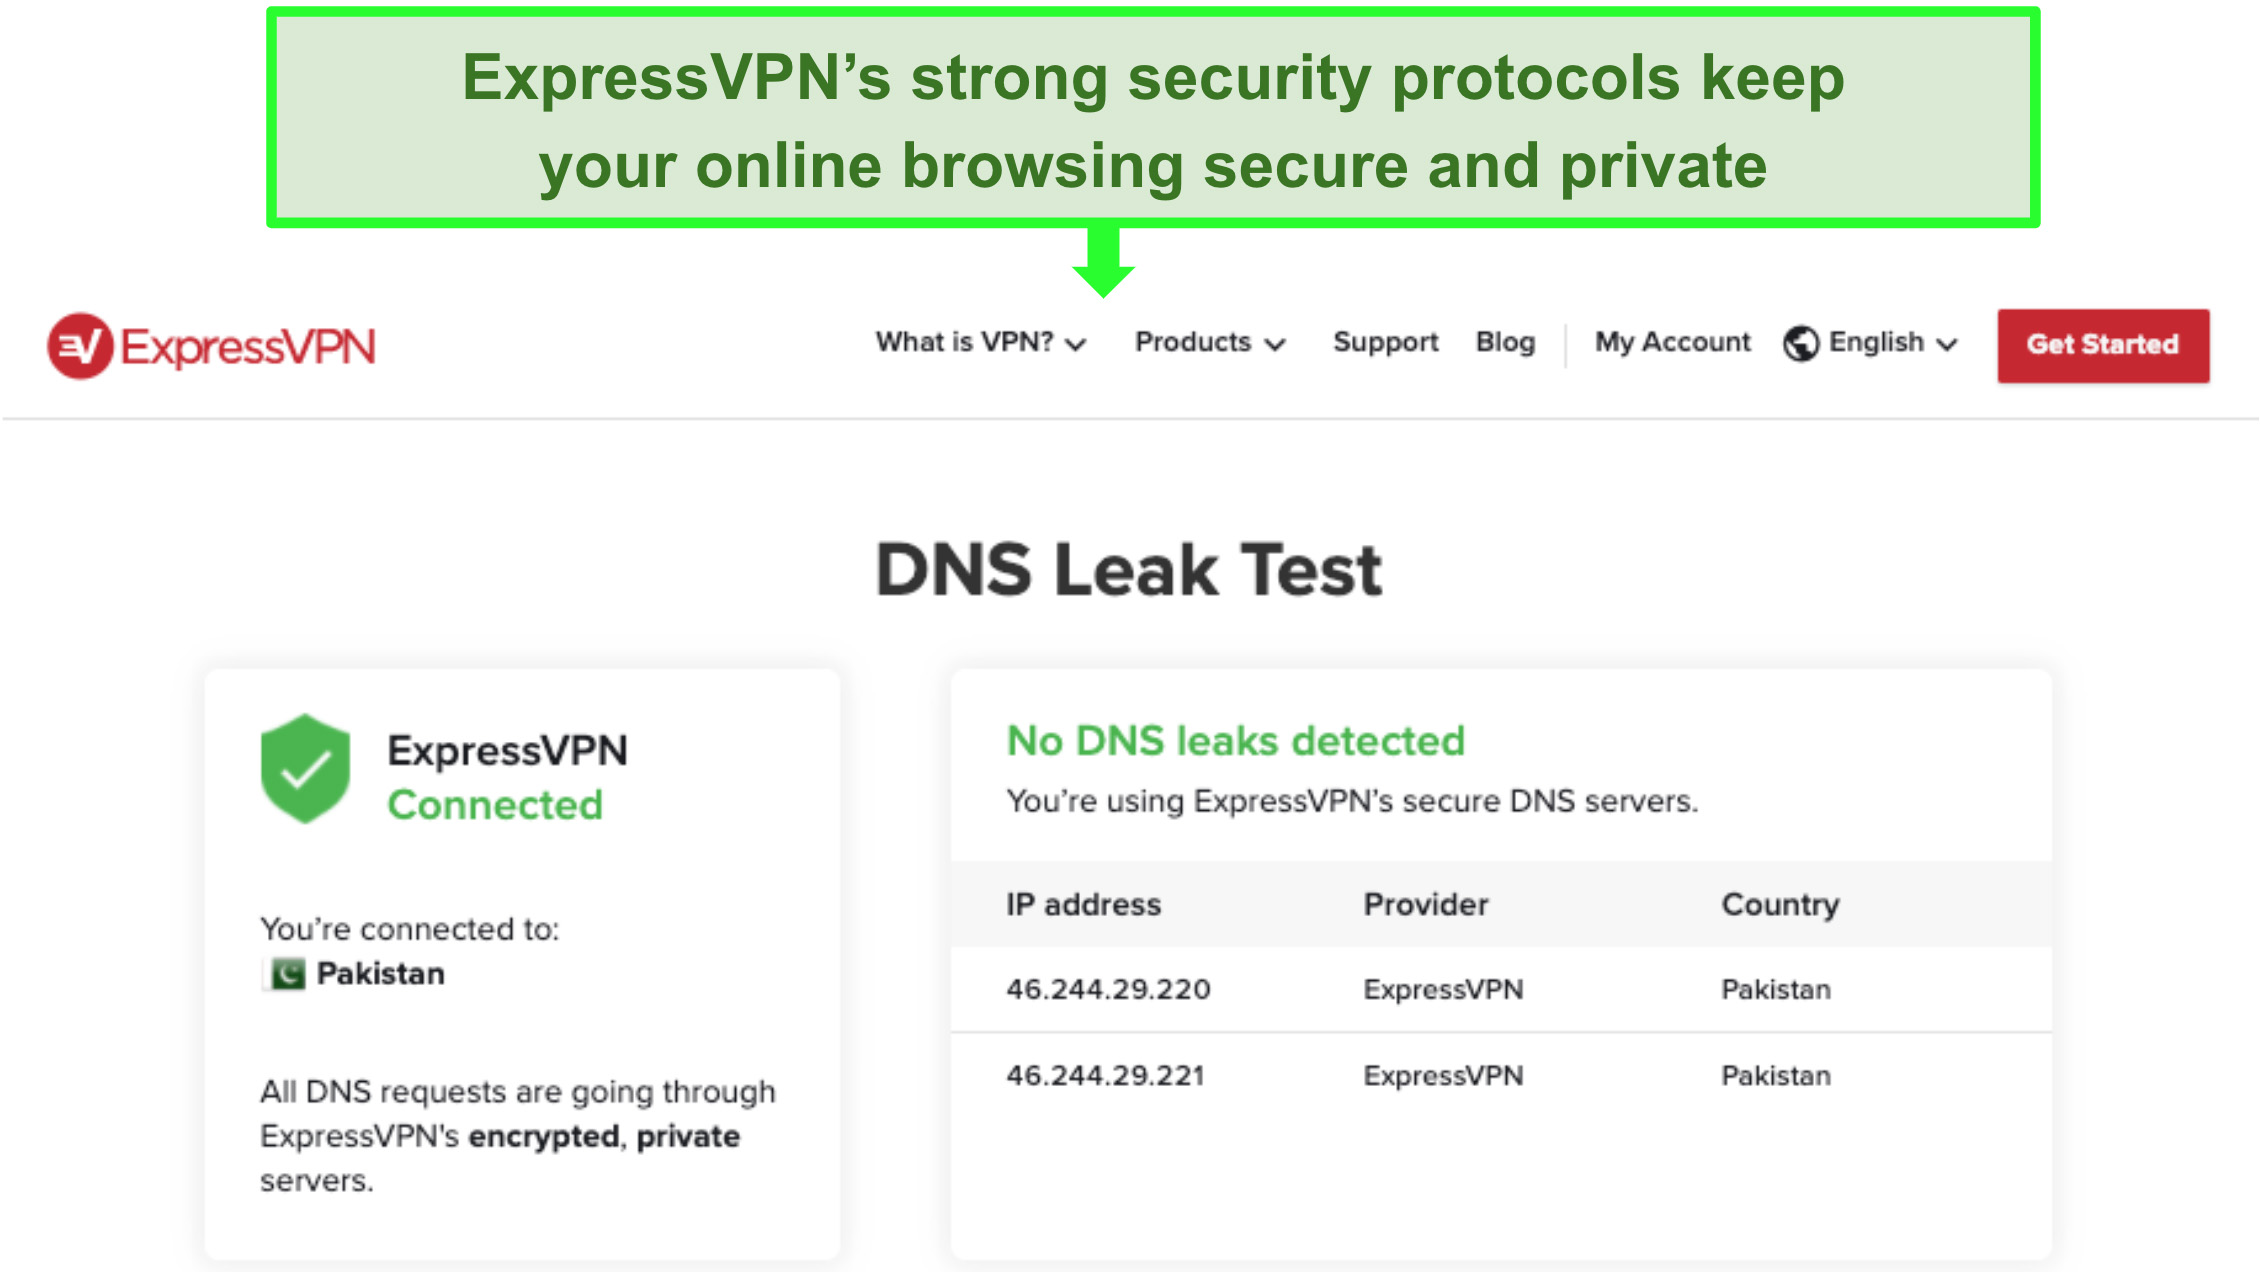 Screenshot of ExpressVPN's DNS Leak Test showing no DNS leaks detected.